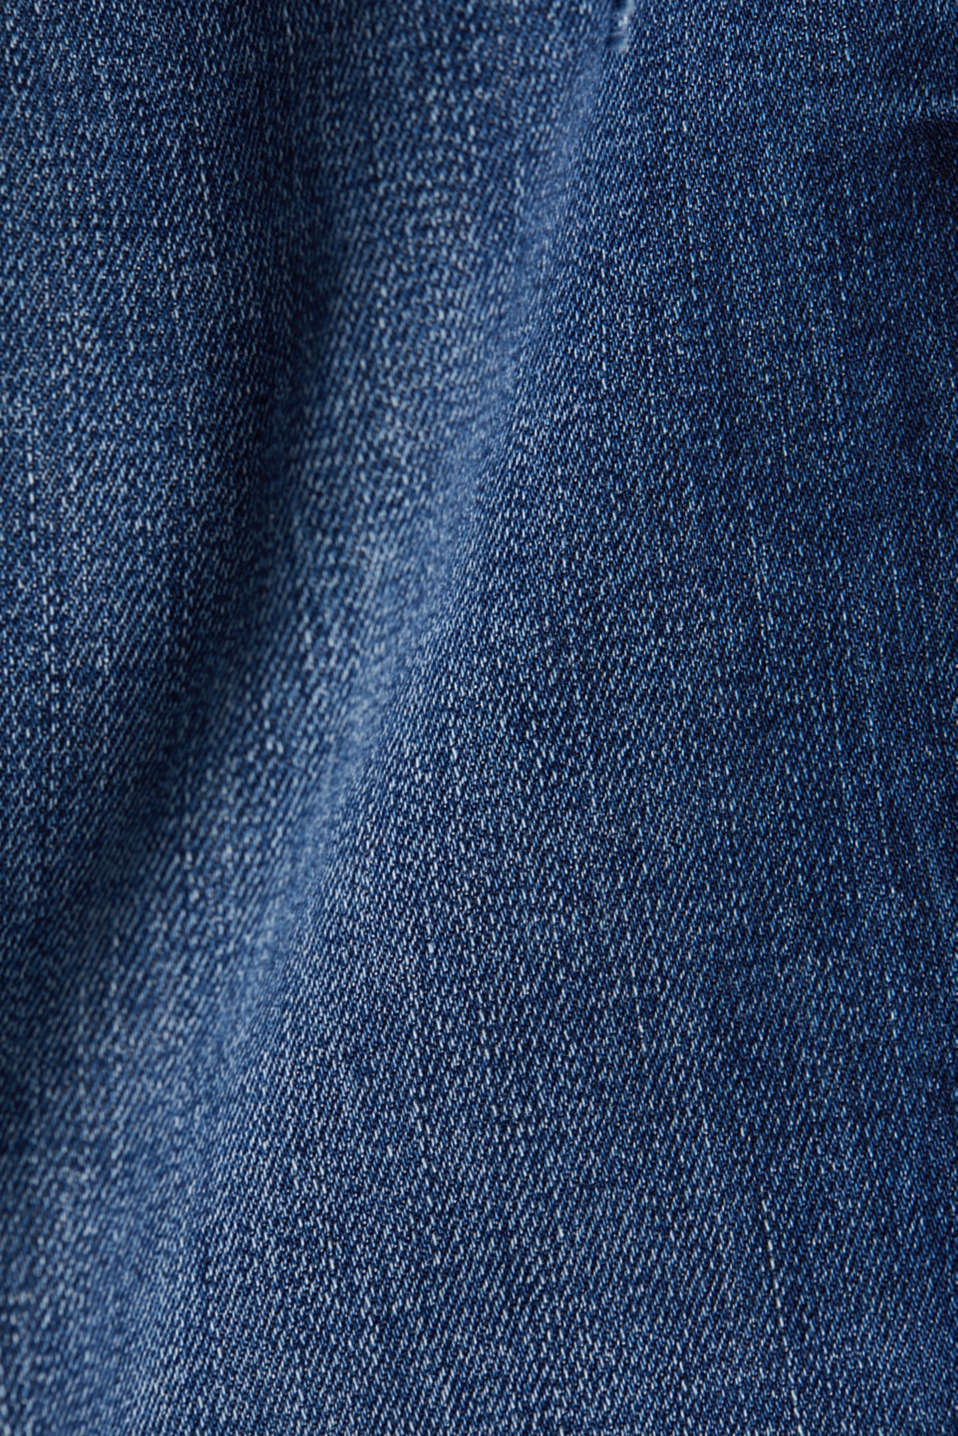 Ankle-length jeans with a vintage finish, BLUE MEDIUM WASH, detail image number 4